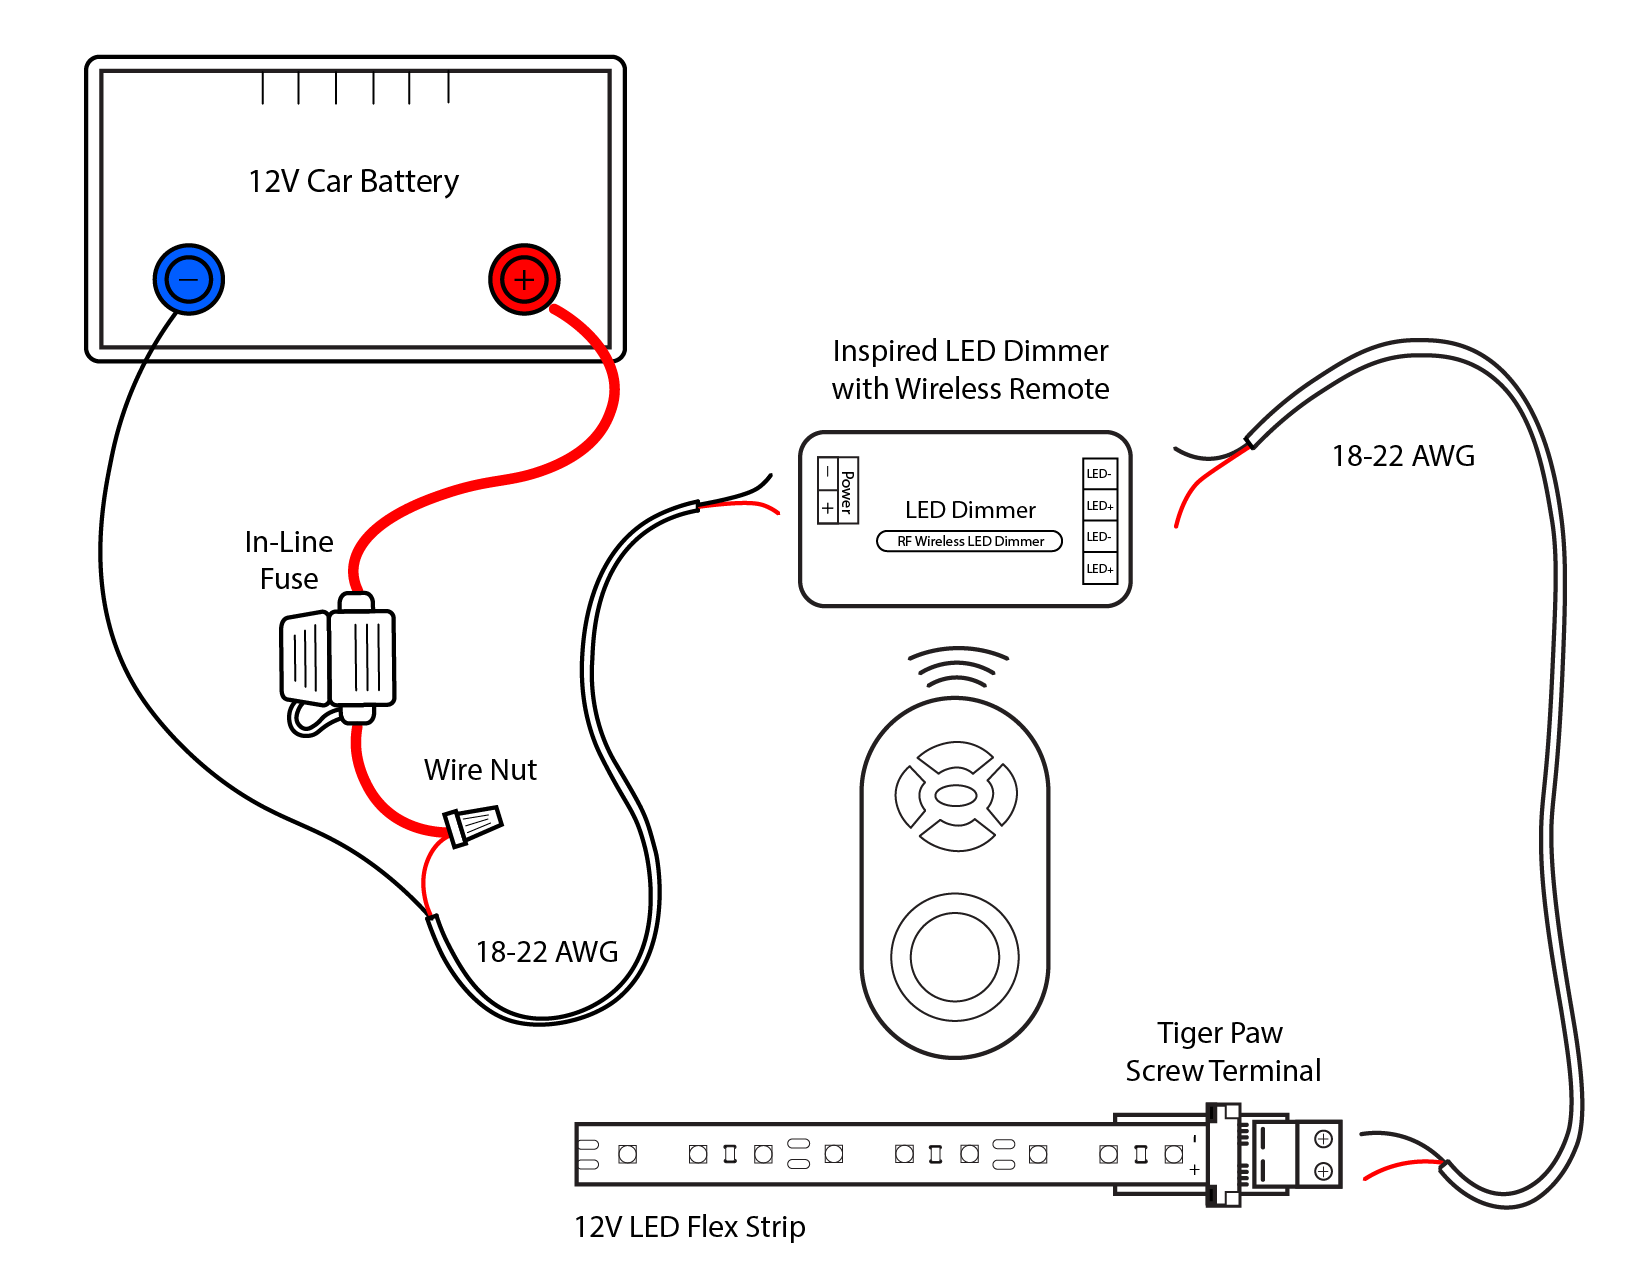 Led Connection Diagram Wiring Diagrams Dimming Driver Diy Project Tutorial Car Lighting Inspiredled Blog With Switch